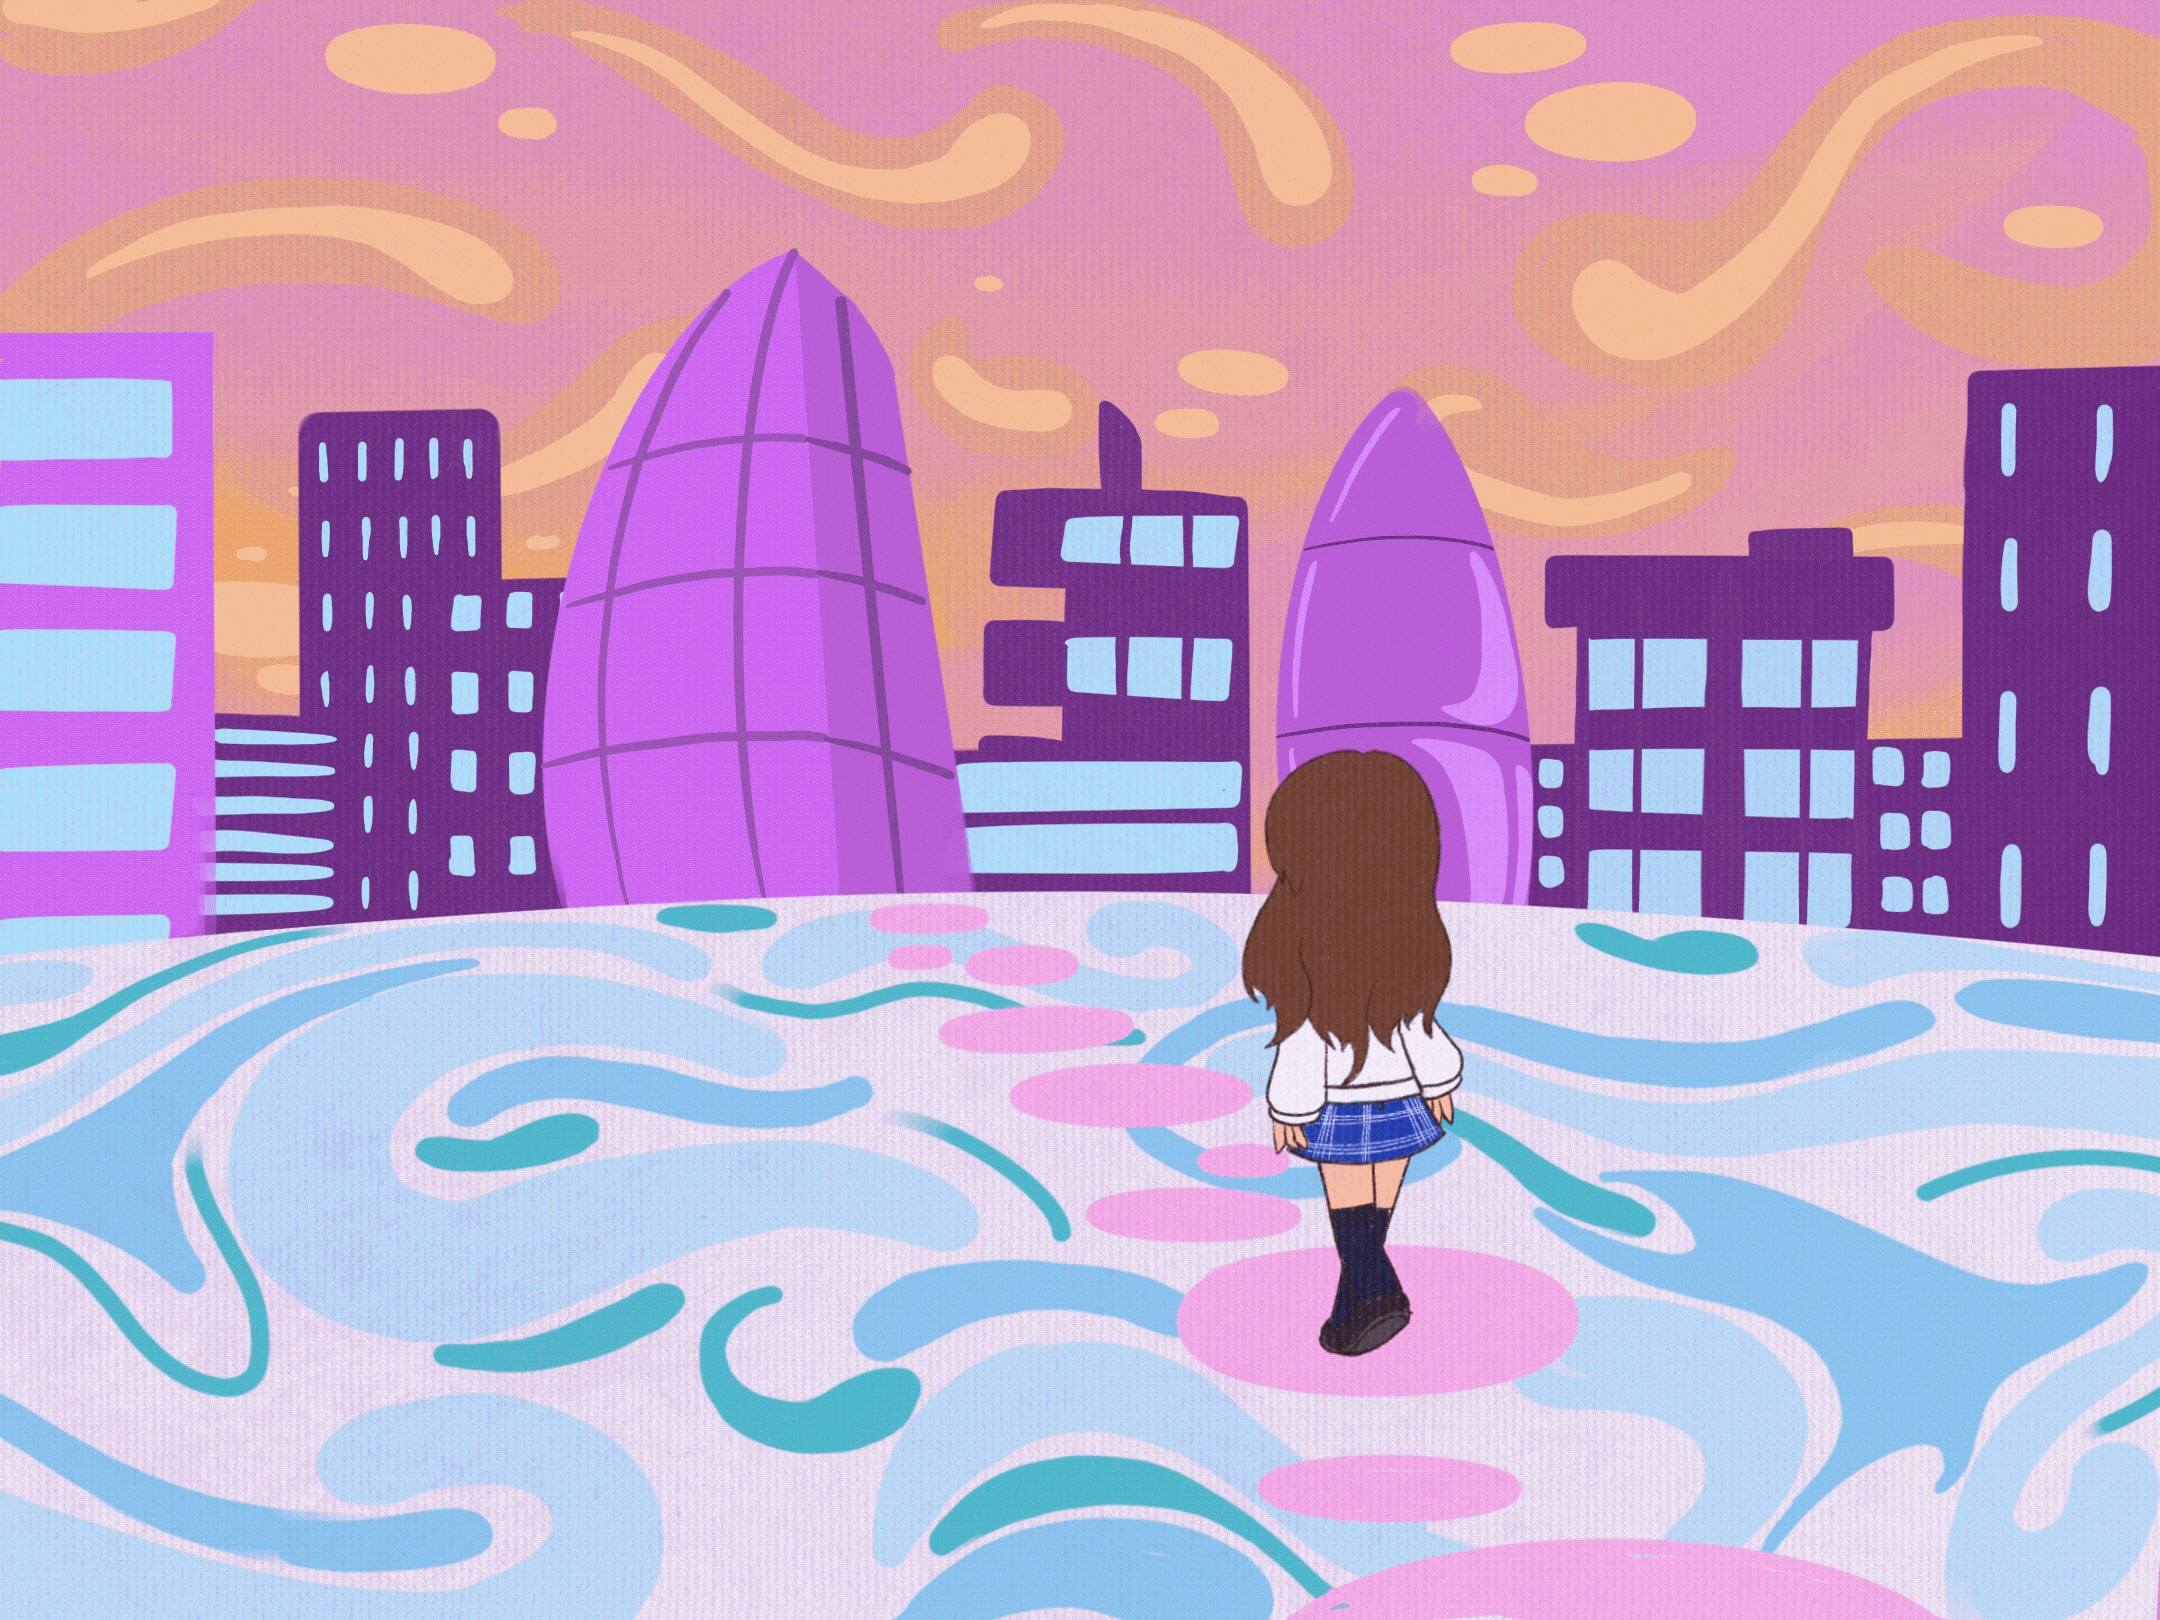 A figure with her back to the audience approaches a purple cityscape scene. The floor below her has a pink, blue and white pattern.